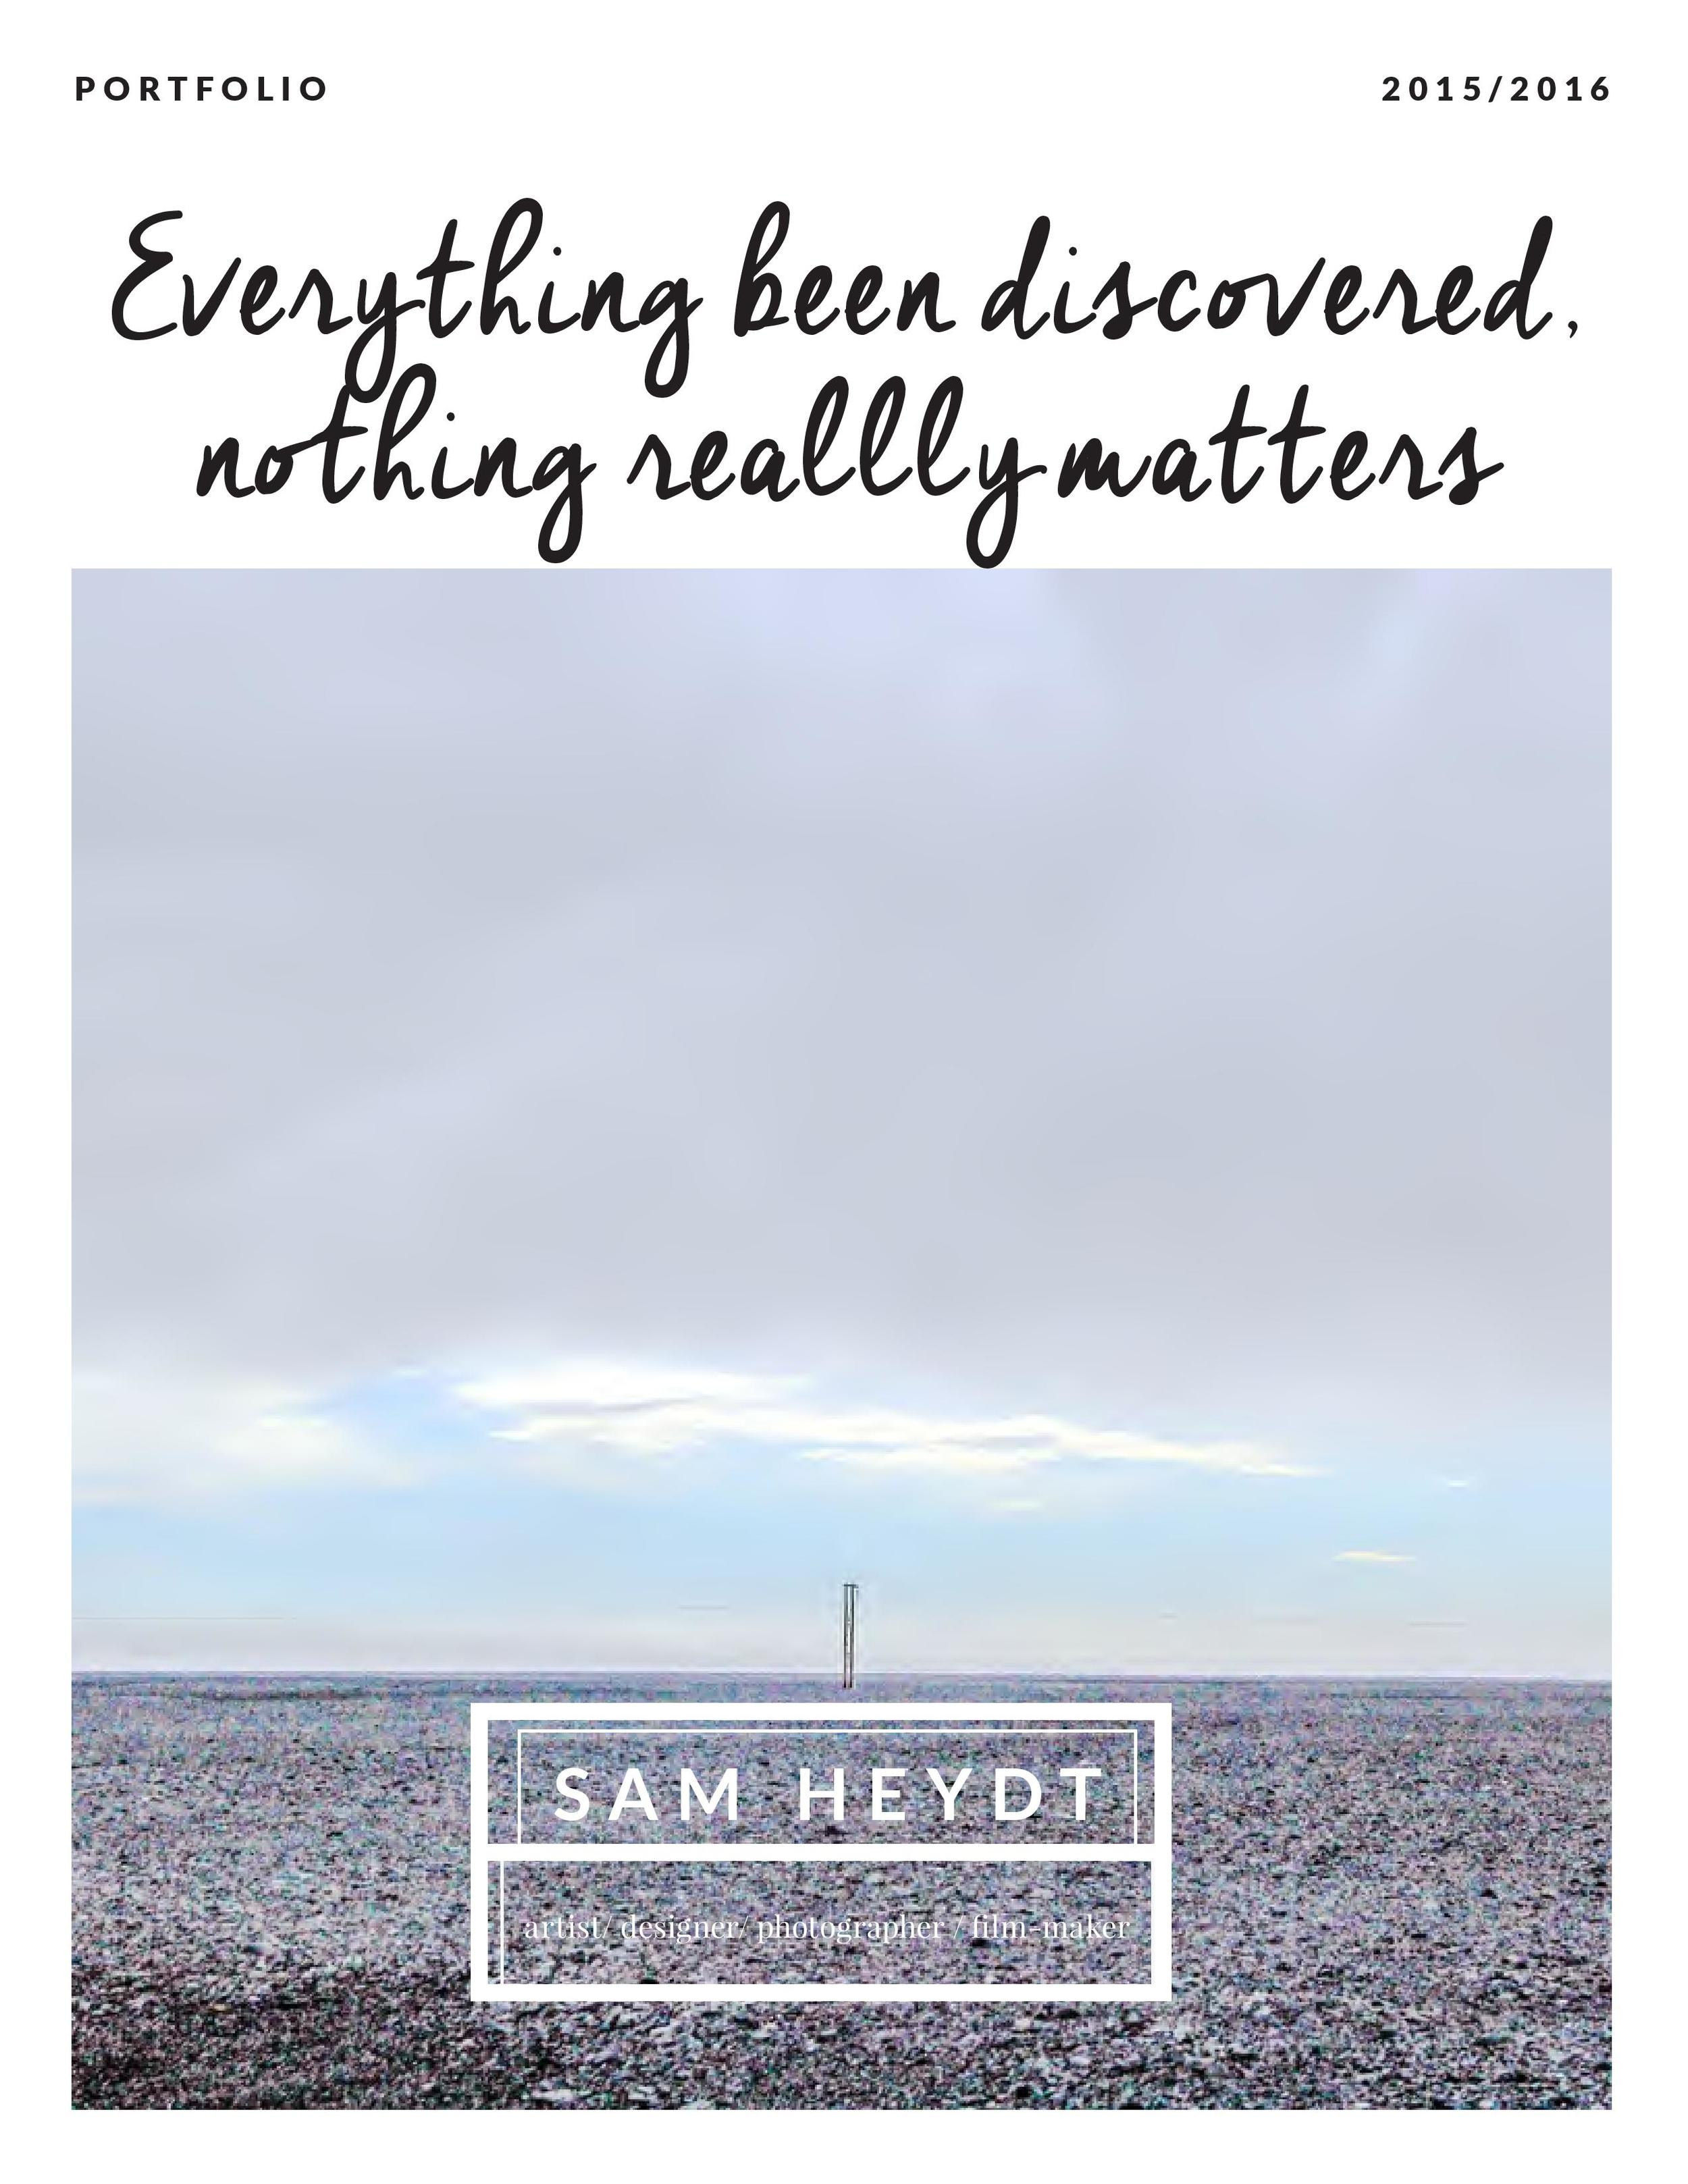 EverythingBeenDiscoveredNothingReallyMatters-Catalog-HEYDT-email-page-001.jpg